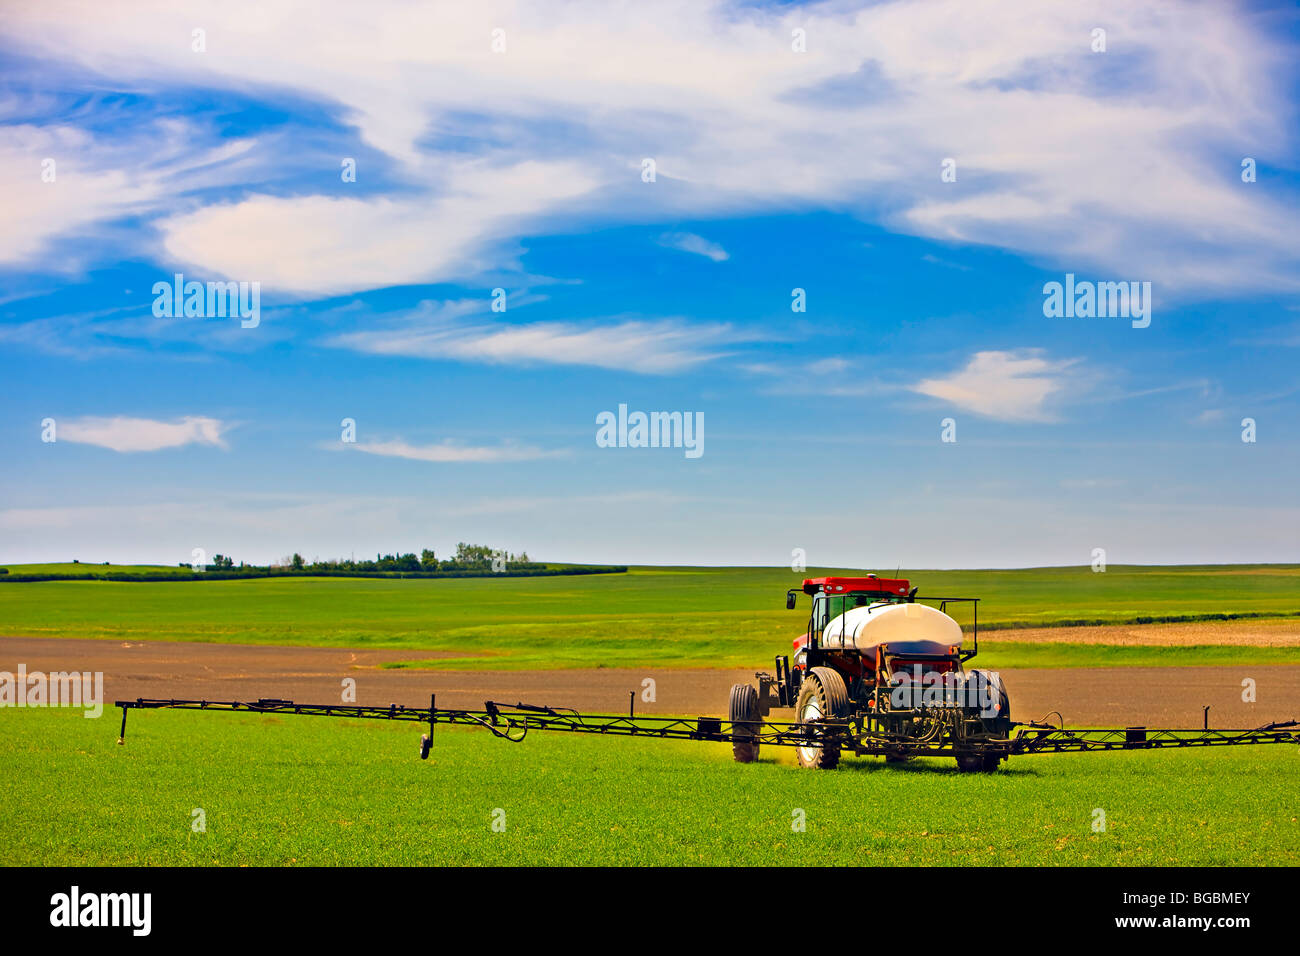 Farmer spraying crops by tractor near the town of Rockglen, Southern Saskatchewan, Canada. - Stock Image